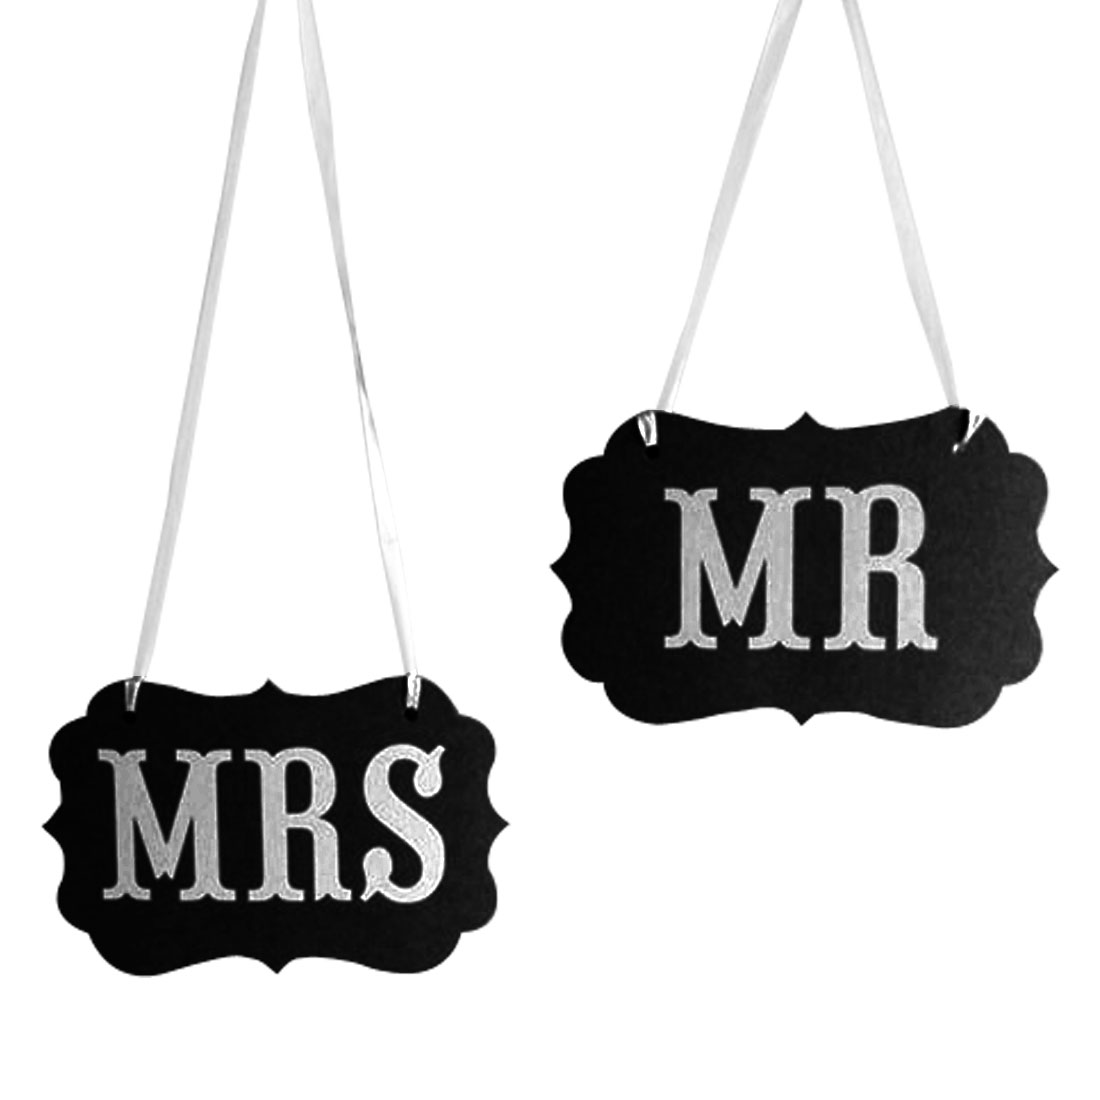 MR MRS Letter Wedding Party Decoration Photo Prop Banner White Black Set 2 in 1